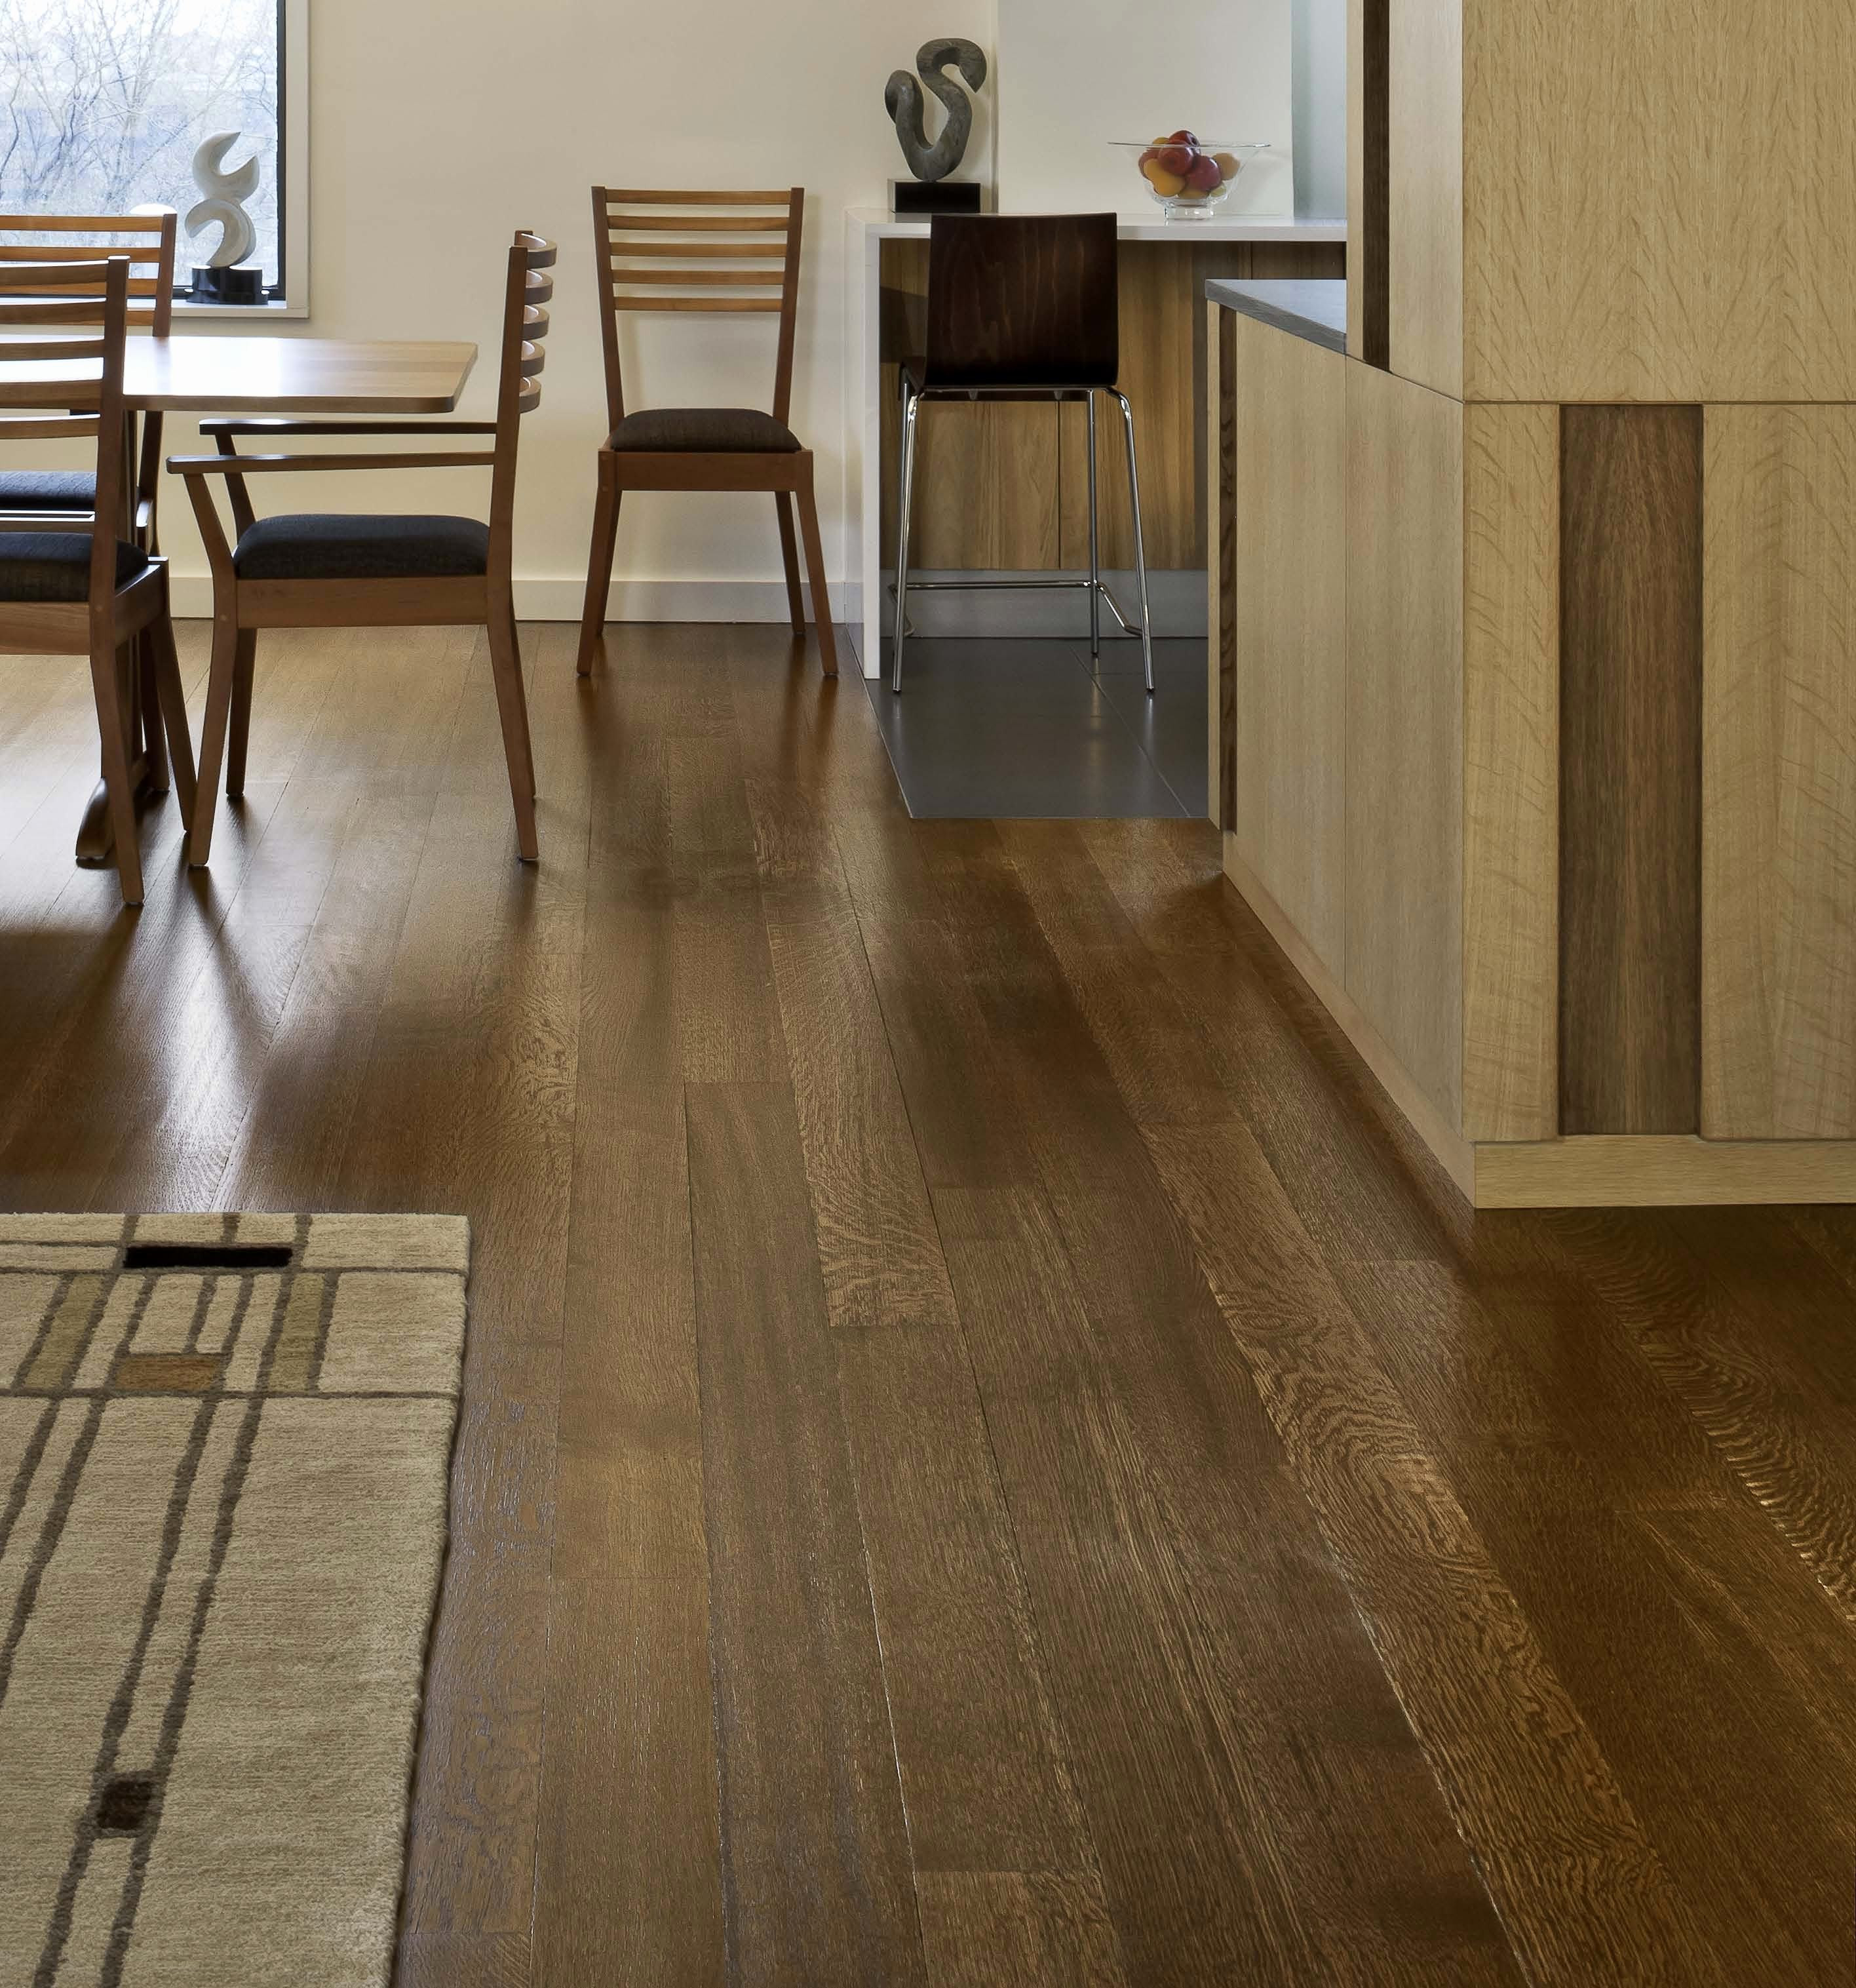 dark hardwood floors cost of new 30 white kitchens with dark wood floors images in full size of bedroom trendy discount hardwood flooring 11 hull rift sawn white oak floor manhattan